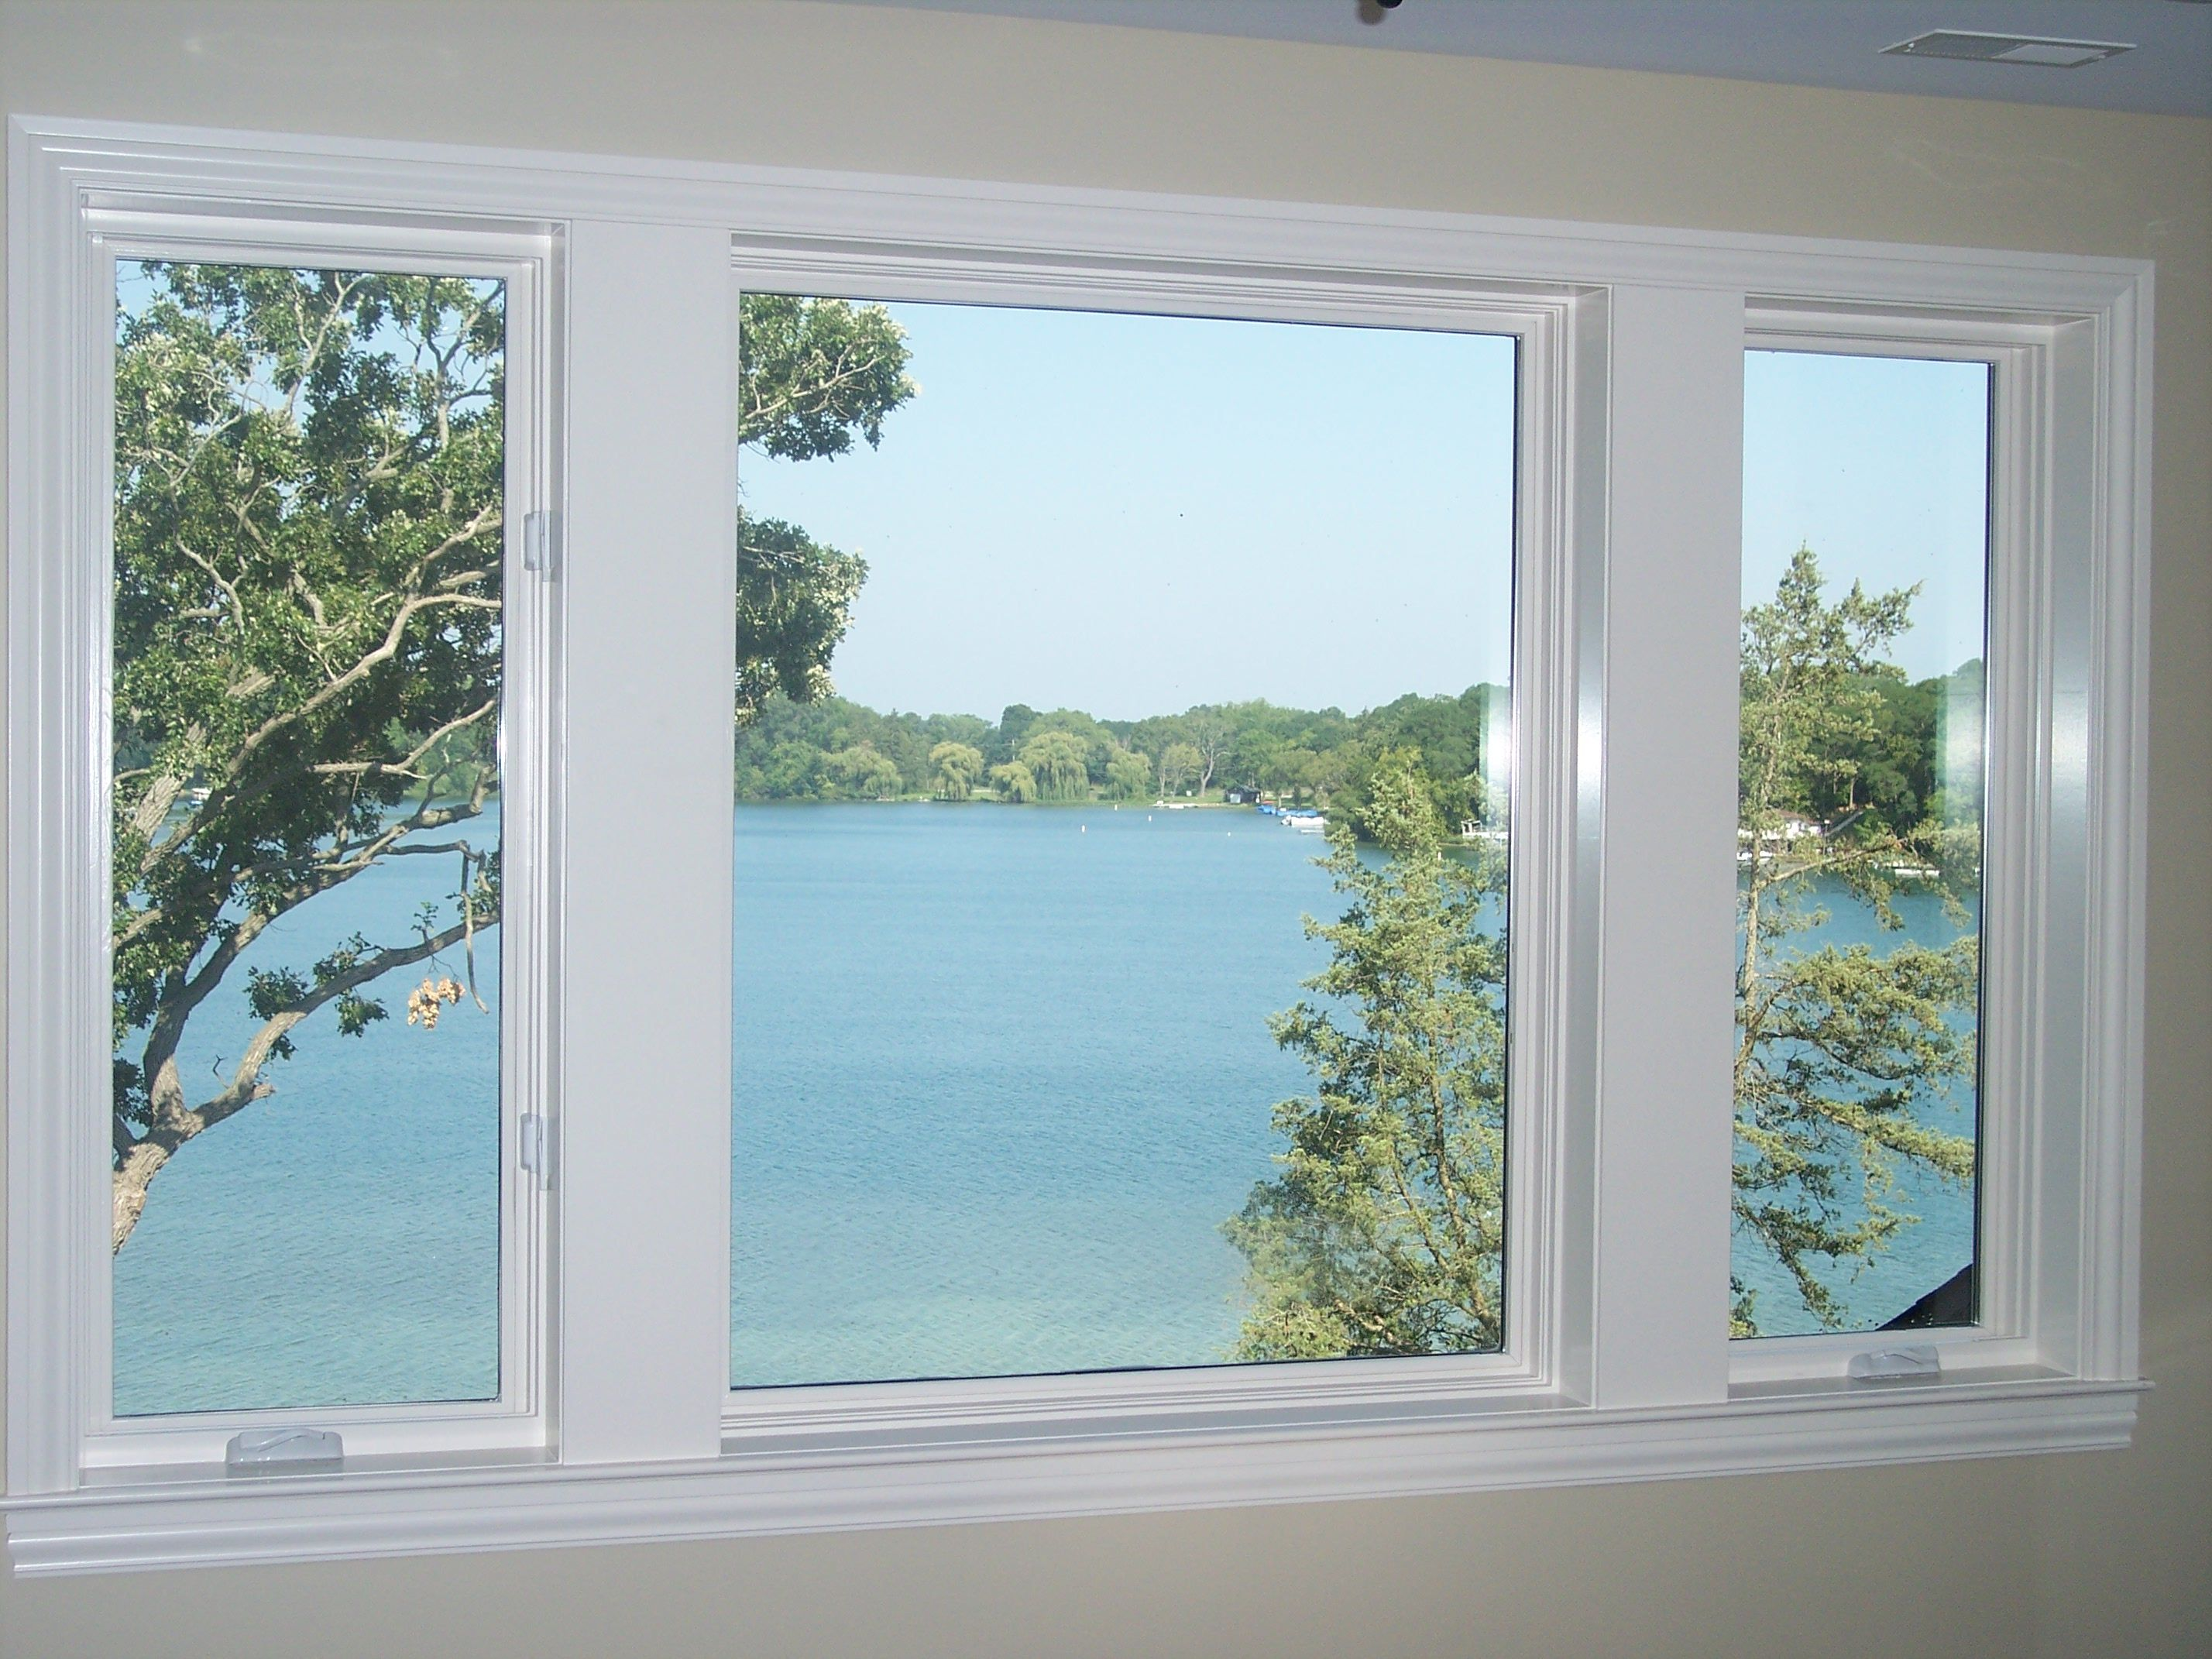 Upstairs lake views through picture window encased by two Lake house windows